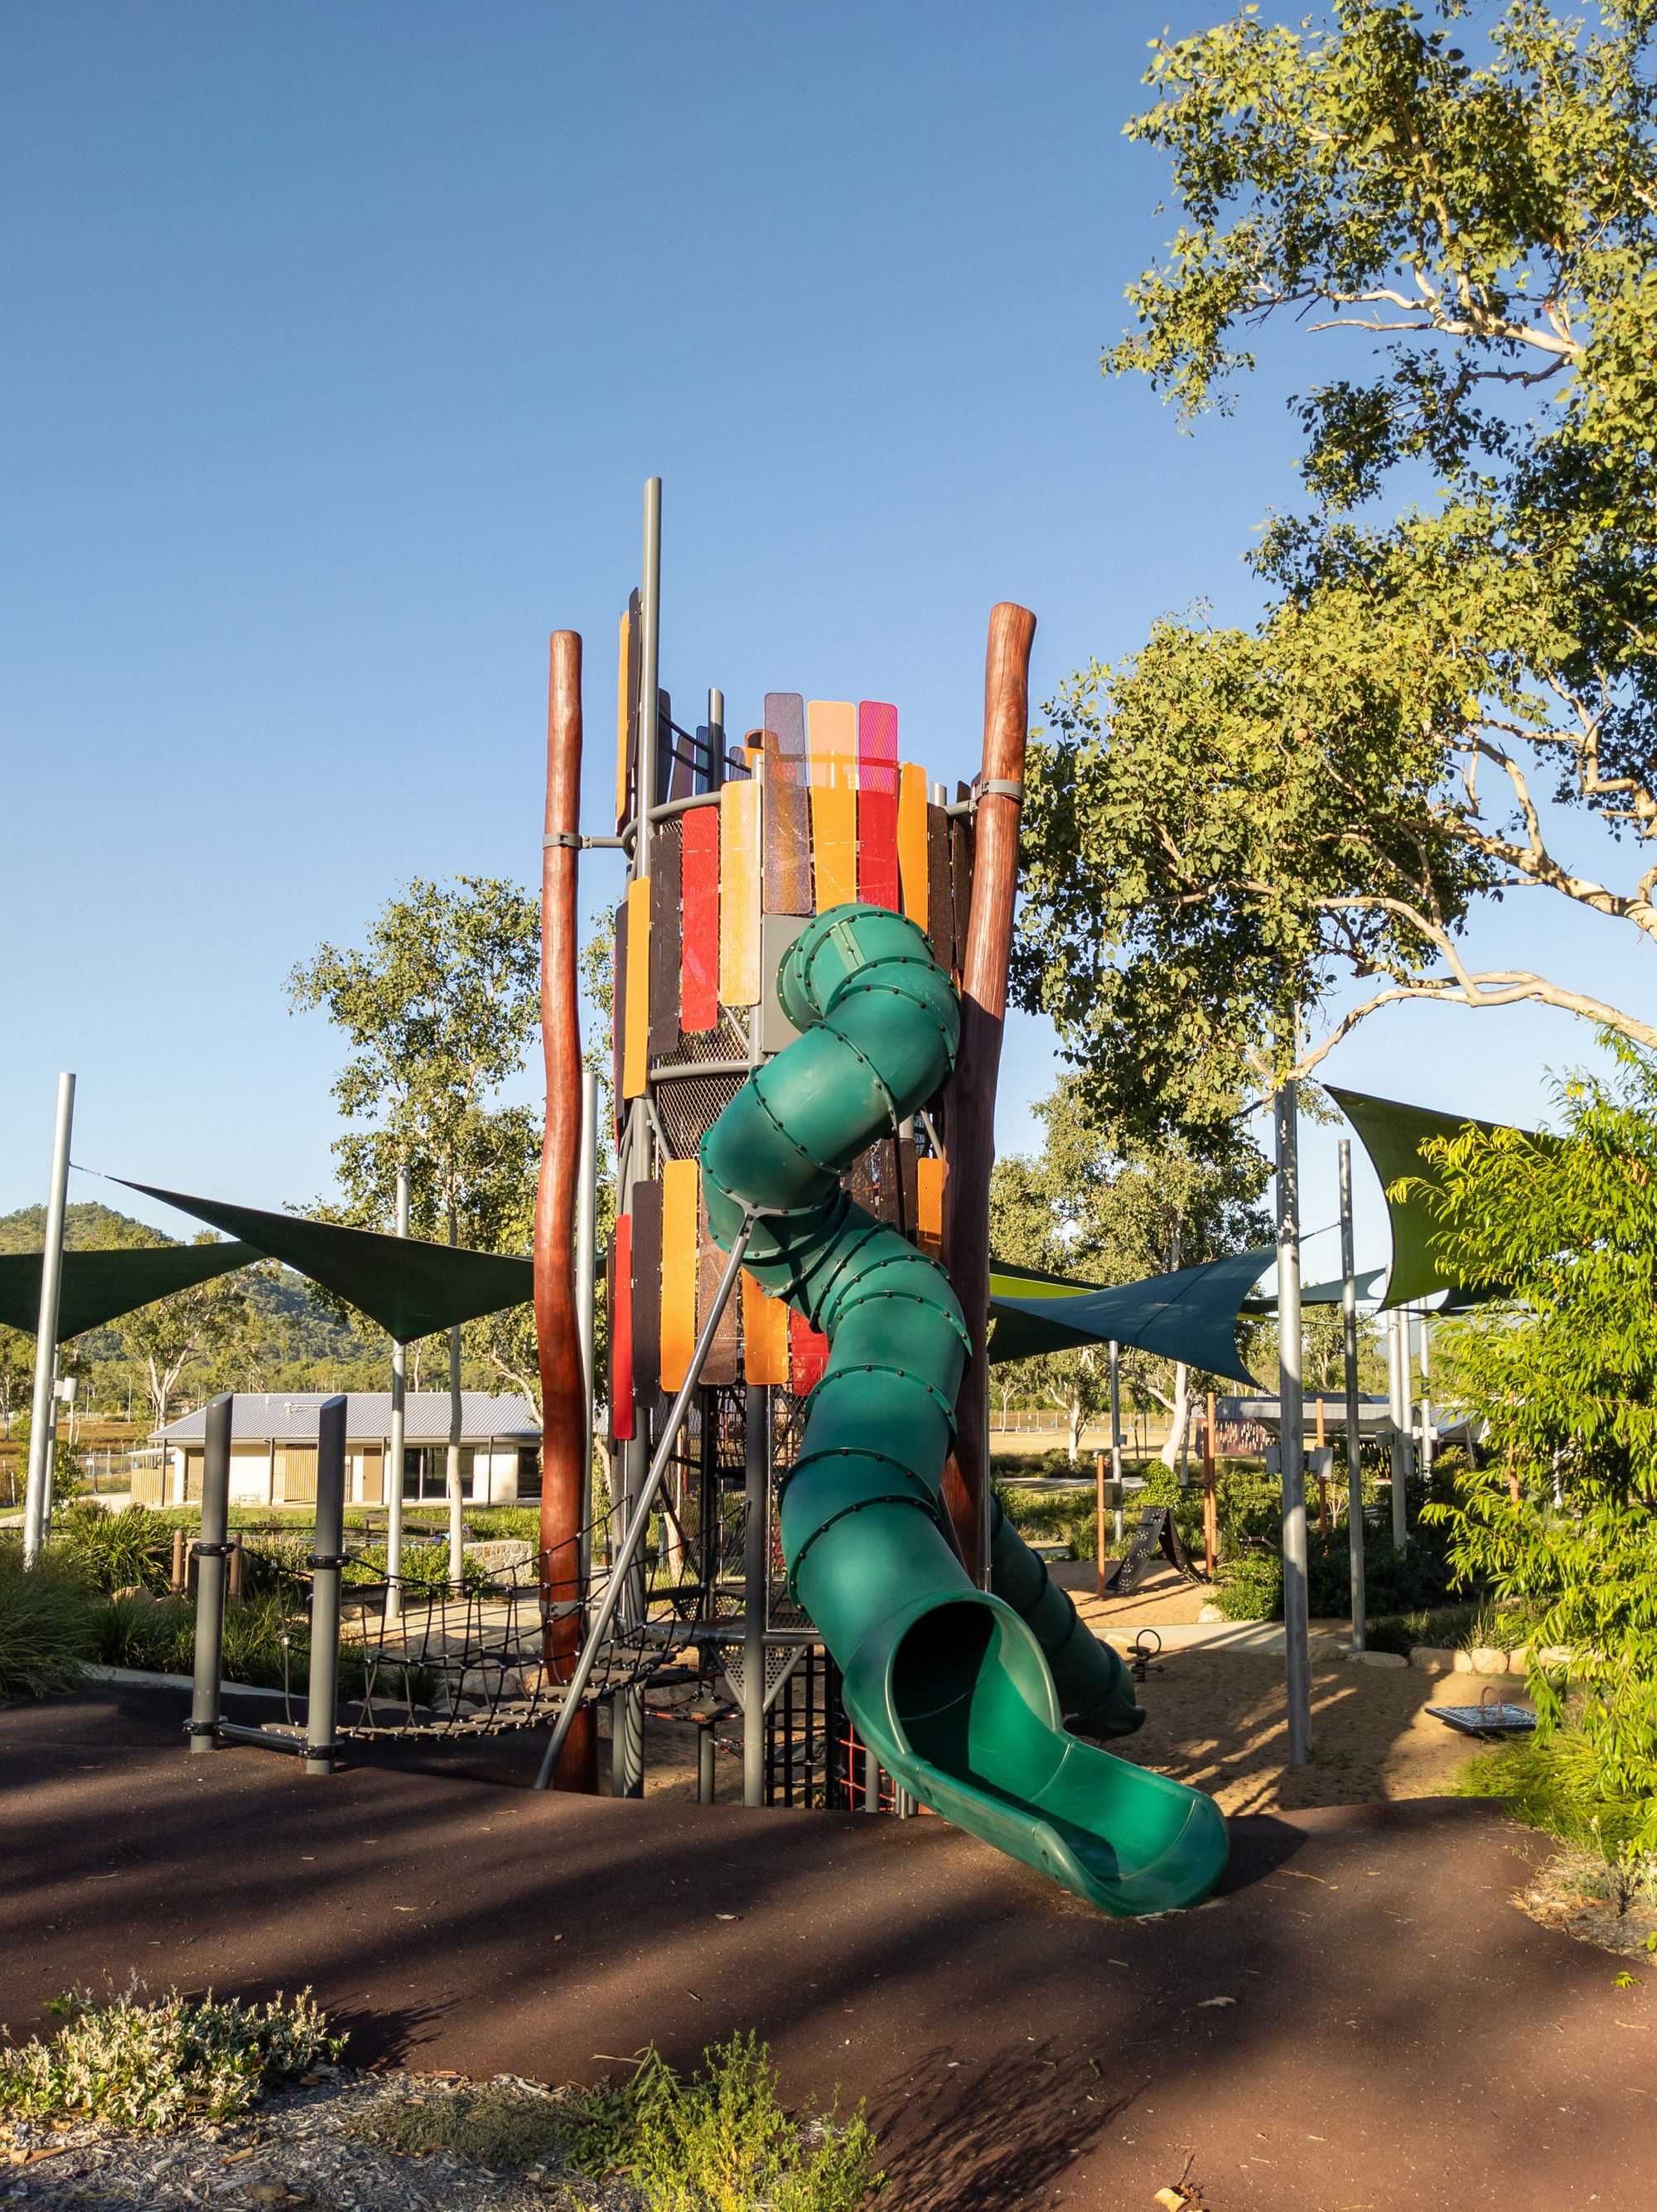 elliot springs tower playground